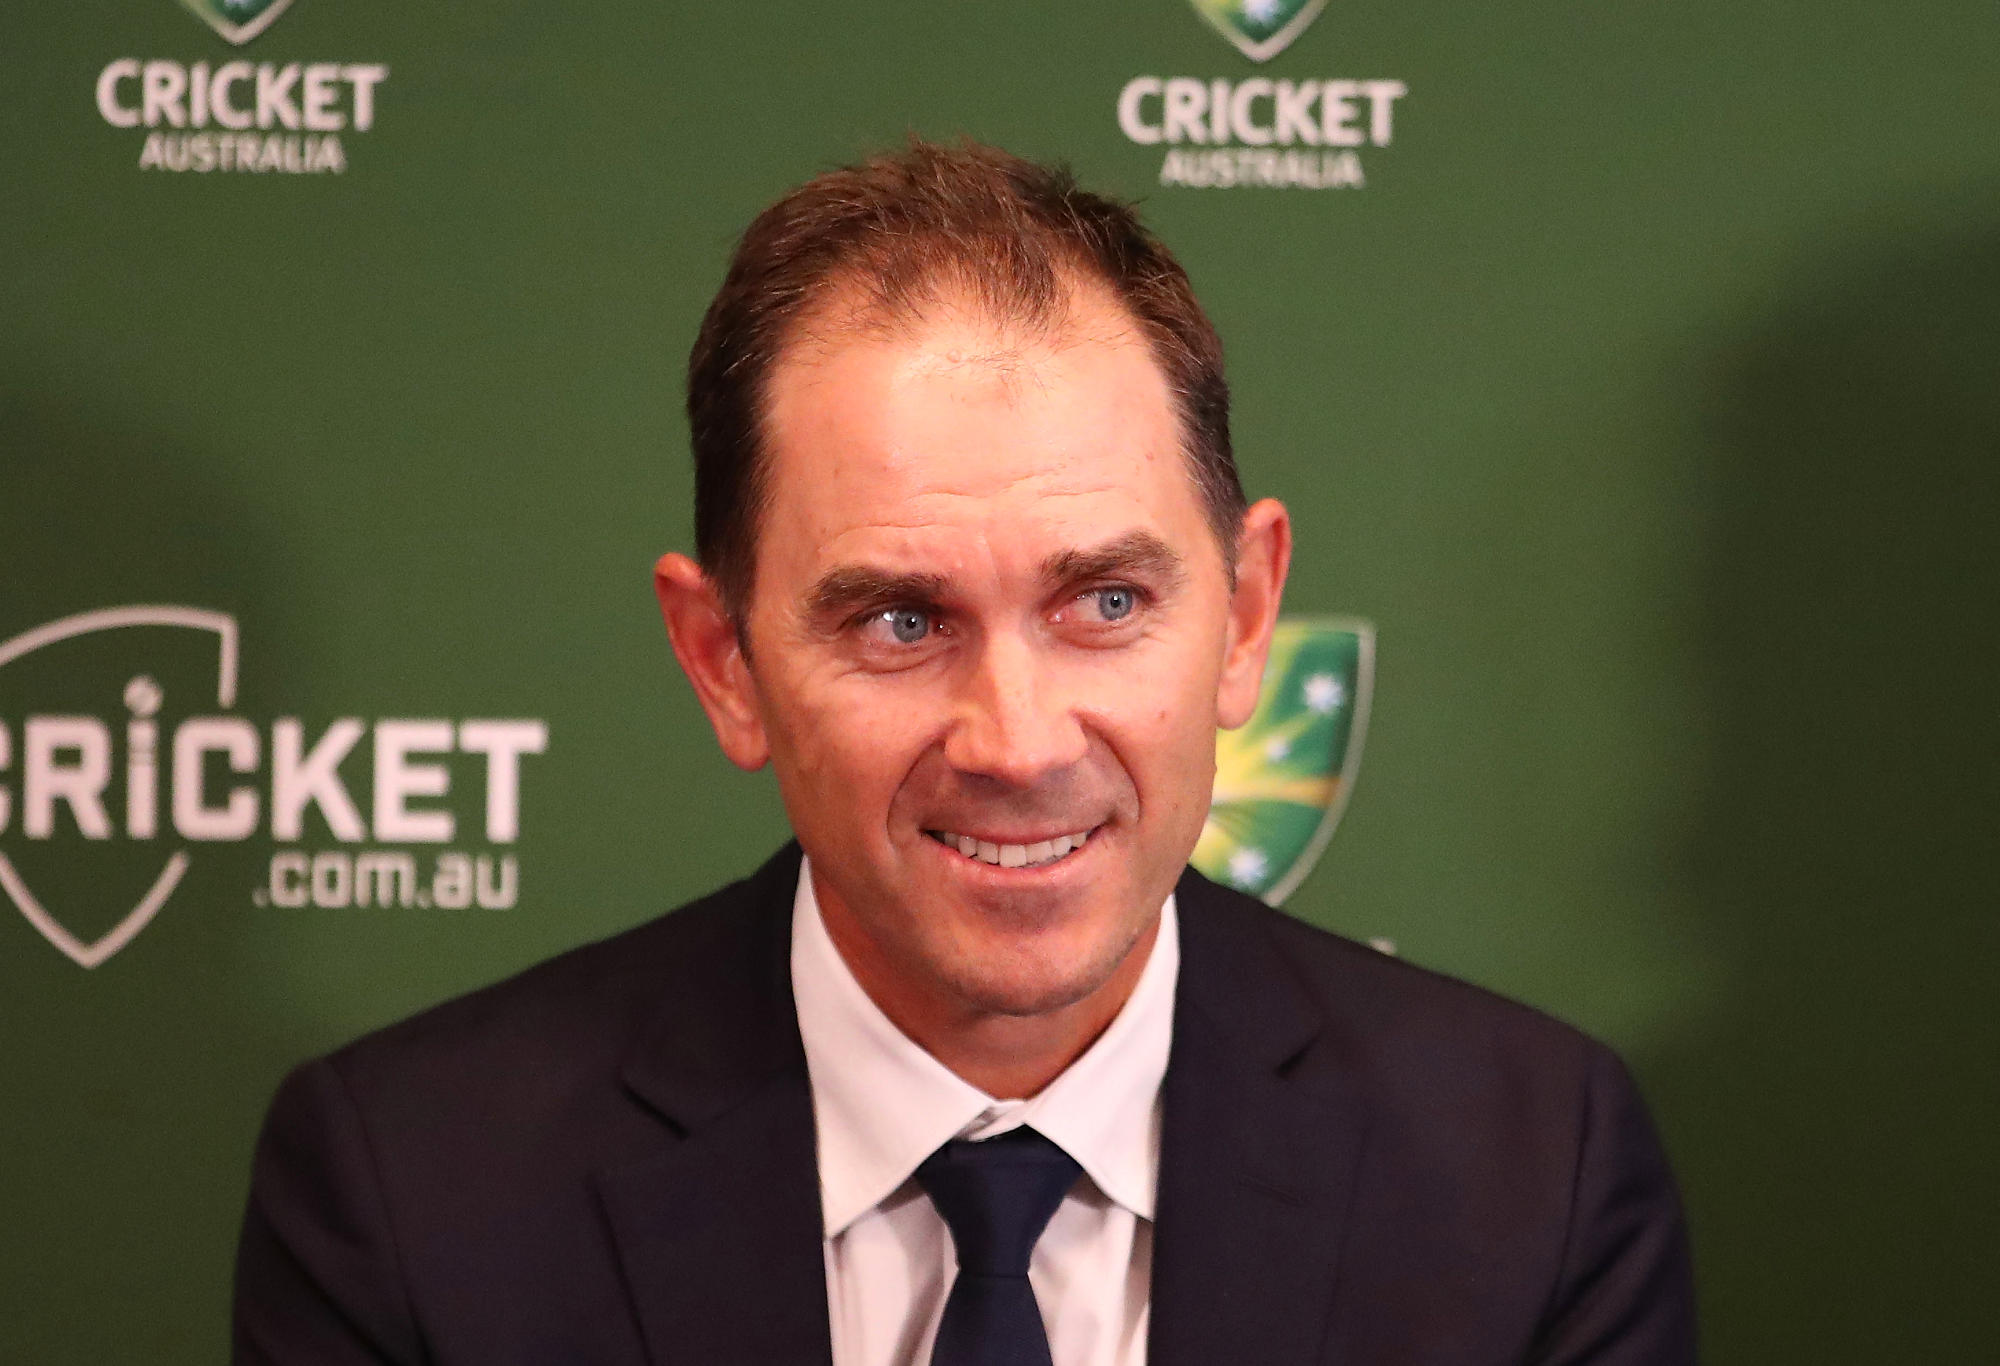 Justin Langer, coach of Australia speaks to the media during a press conference on May 3, 2018 in Melbourne, Australia. Langer has been appointed the Team Head Coach of the Australian men's cricket team, replacing Darren Lehmann who resigned in the wake of the ball tampering scandal.